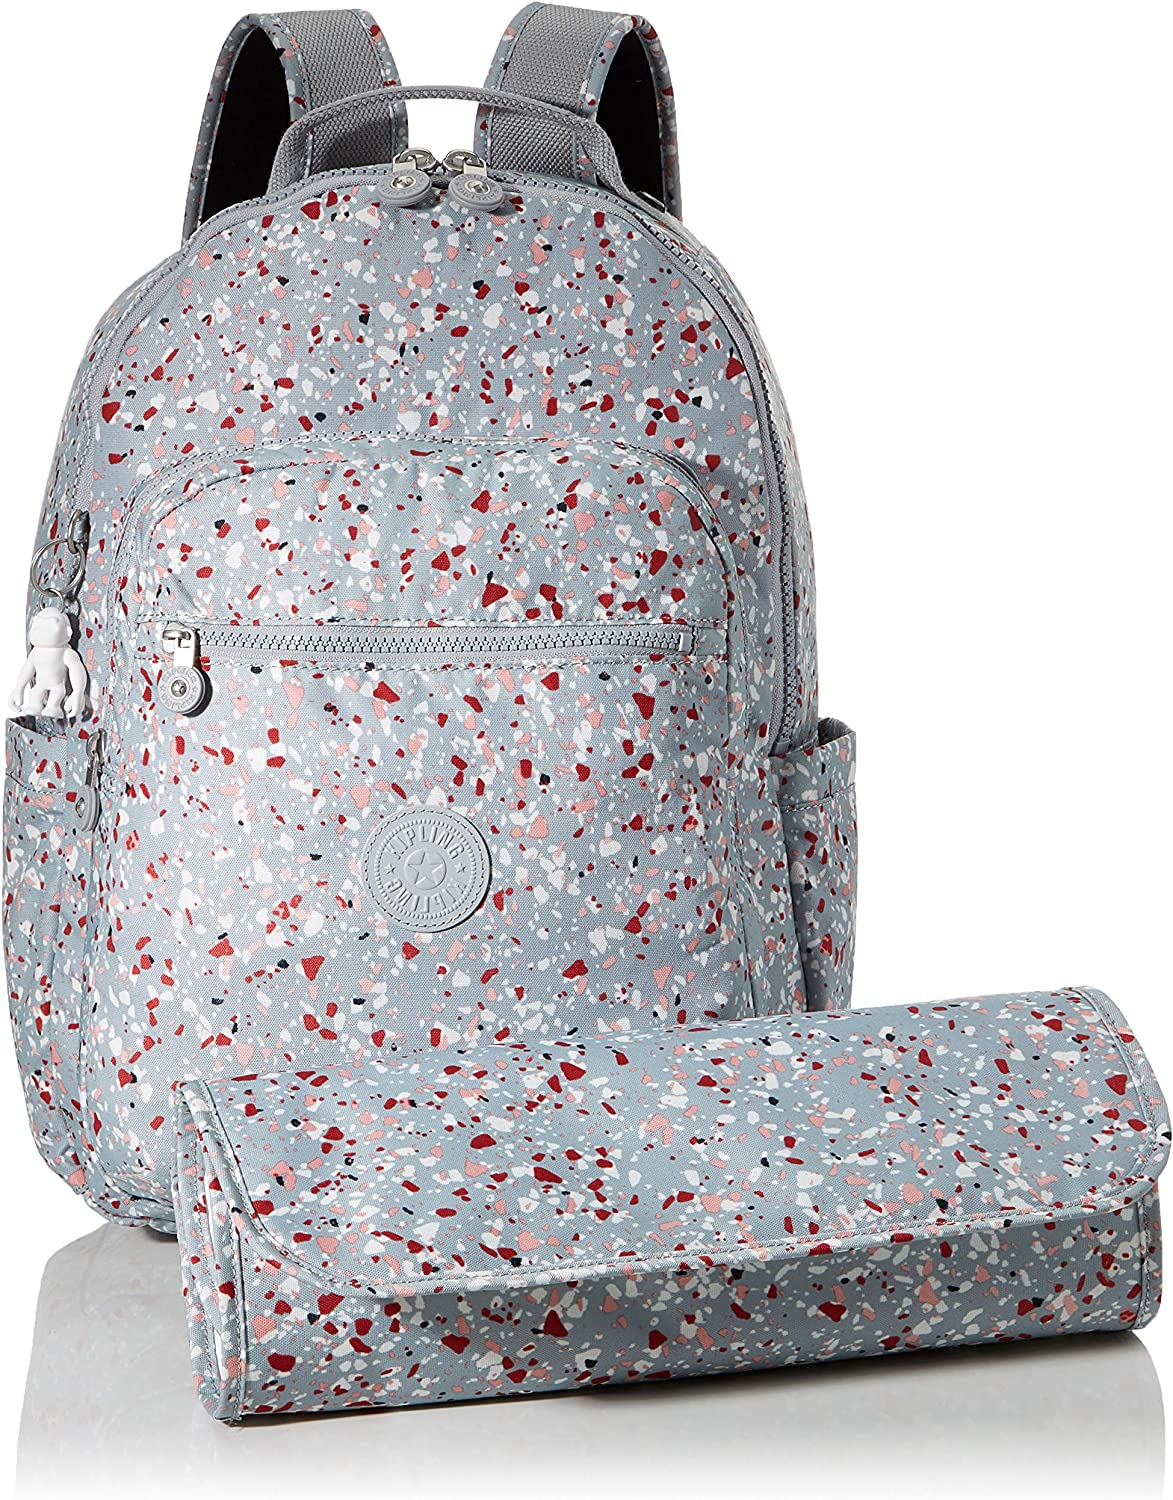 Kipling Seoul Baby Luggage, 24 L, Night Grey Multicolour (Speckled)